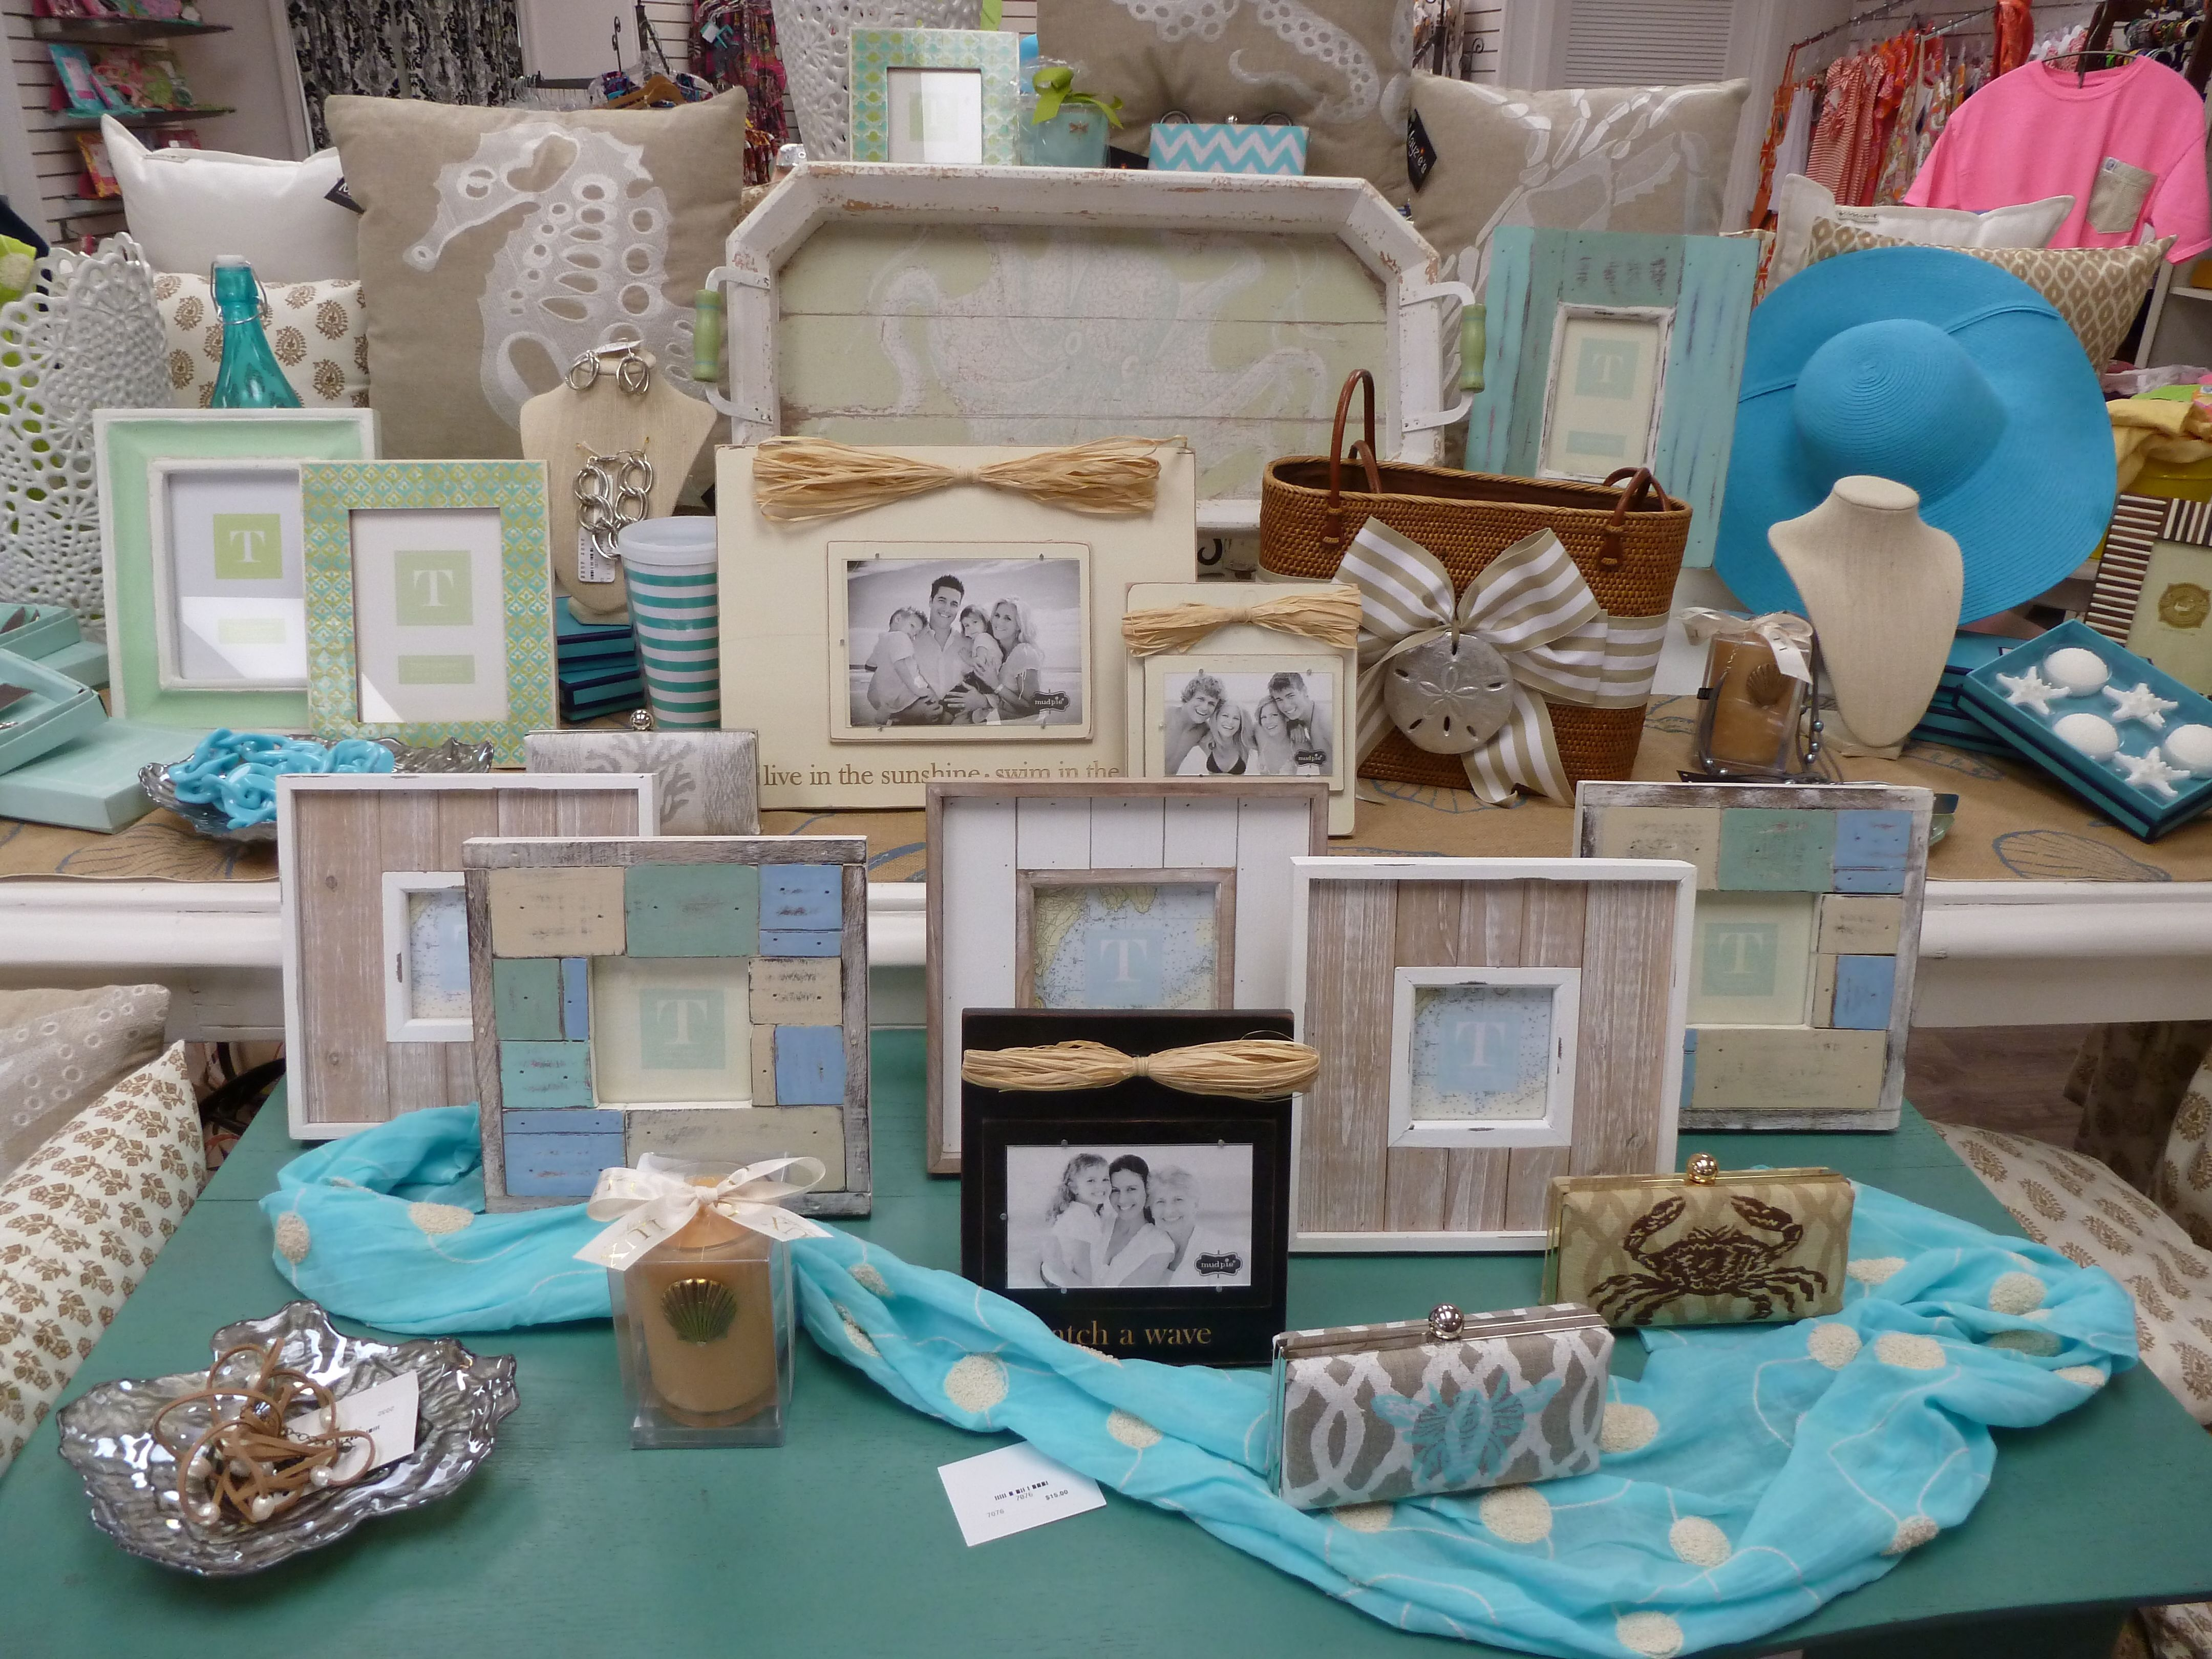 Feather your beach house house warming gifts house